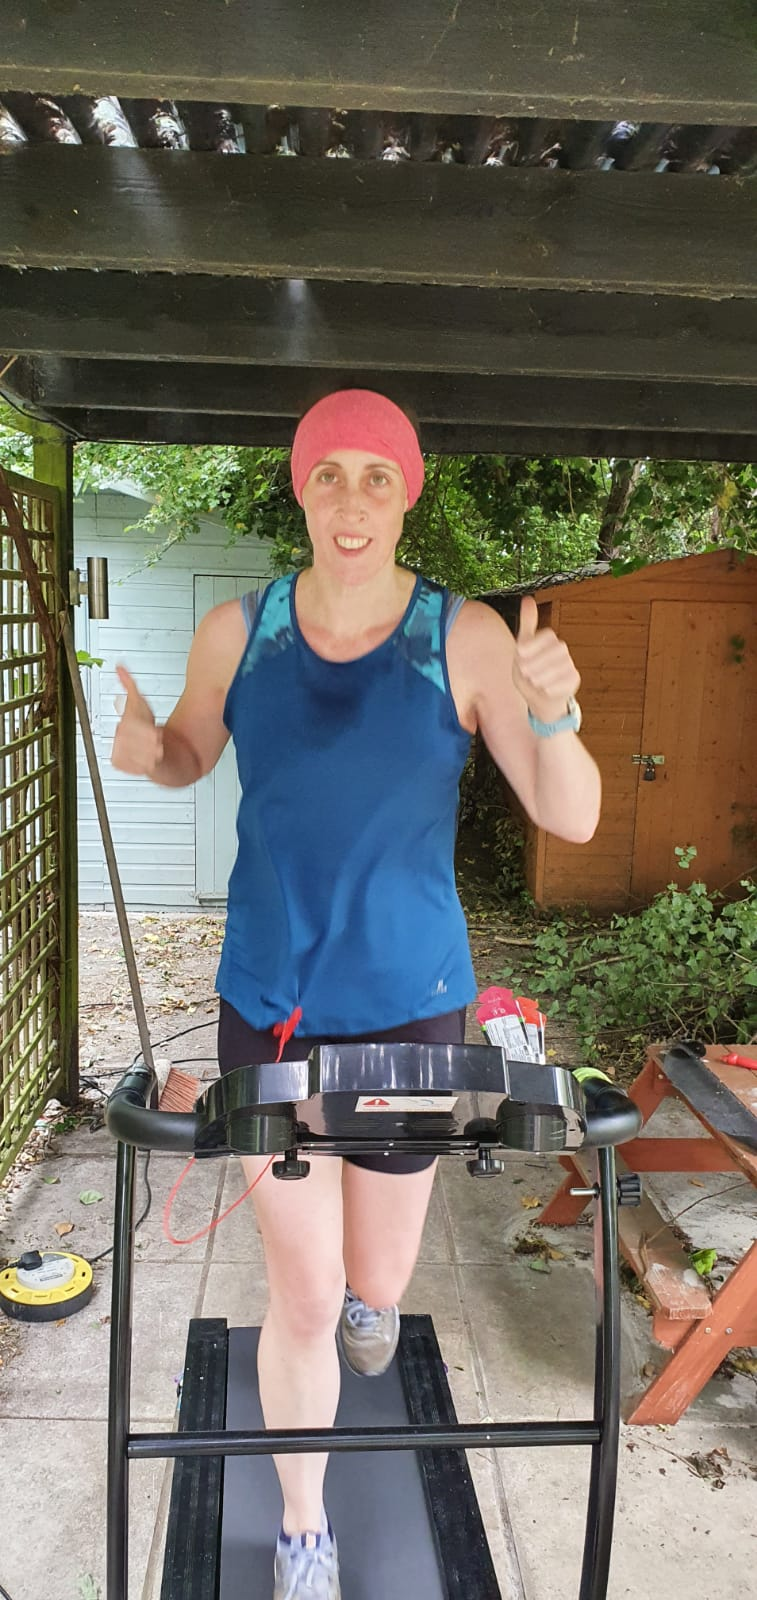 Emily running her marathon on a treadmill, smiling and giving a big thumbs up